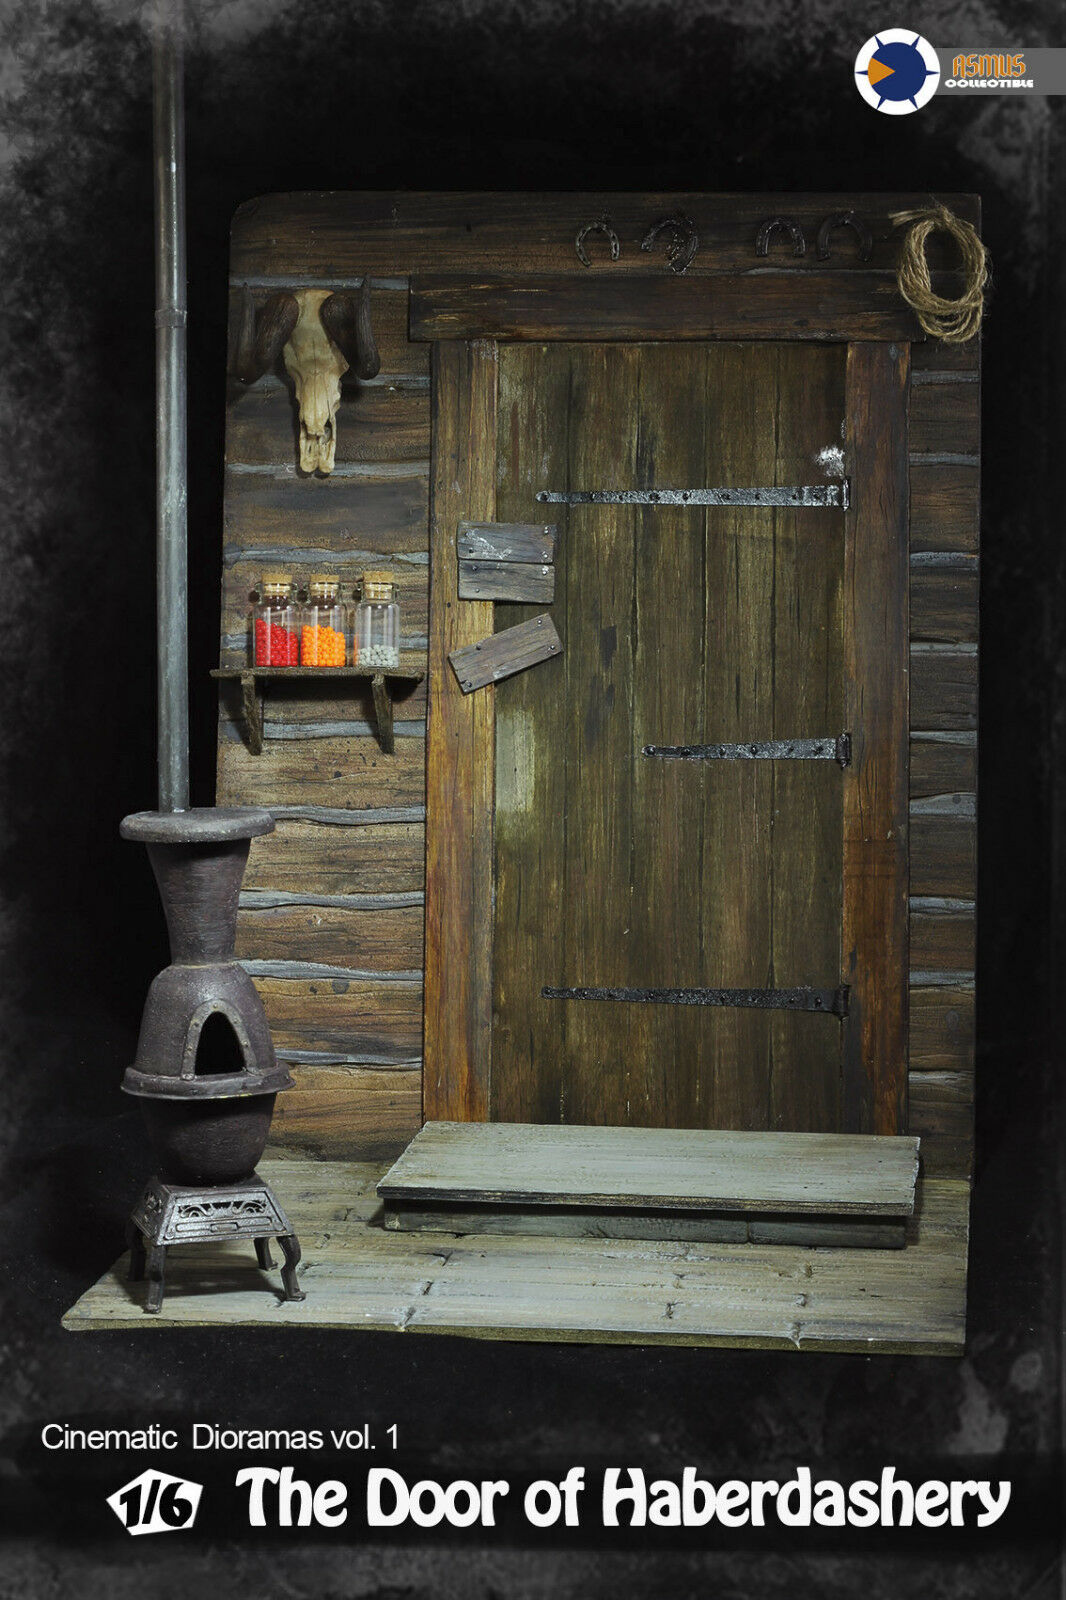 1 6 Cinematic Diorama The Door of Haberdashery 1 6 Figure base  Asmus Toys  CD00